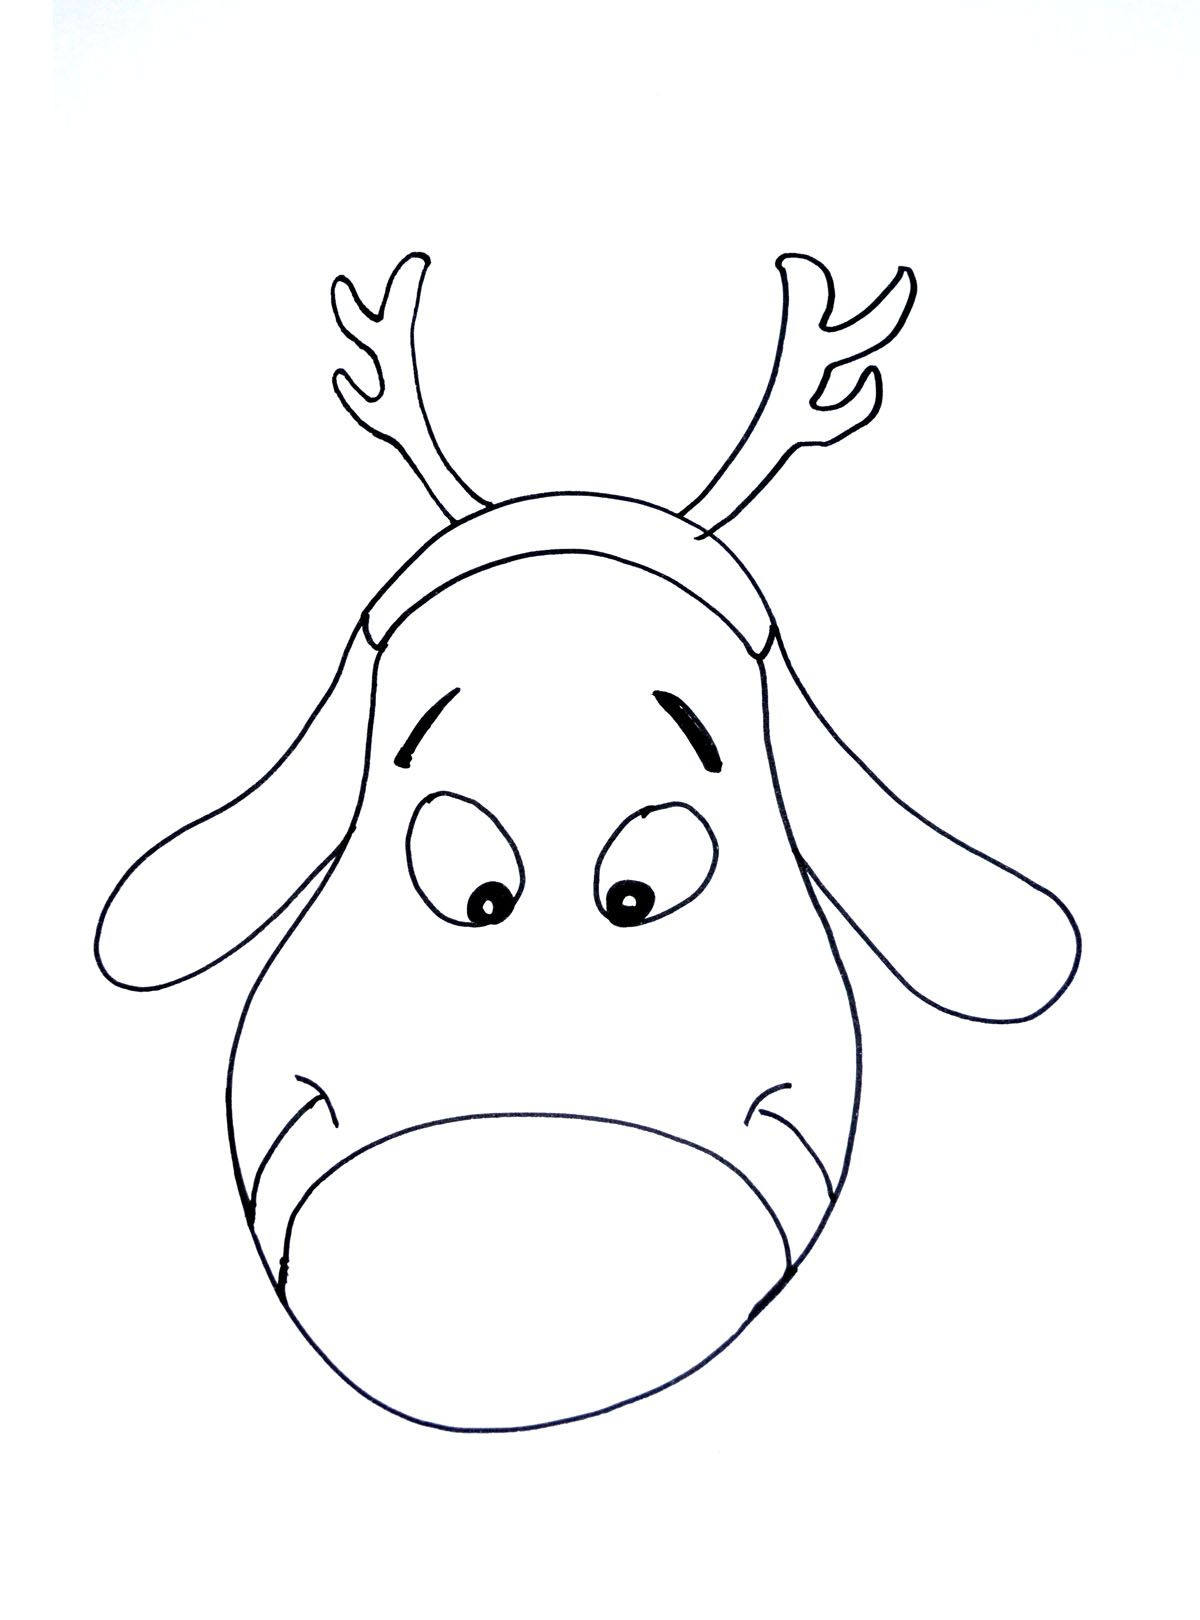 Dessin De Pere Noel Simple : a santa 39 s reindeer very simple coloring page christmas ~ Pogadajmy.info Styles, Décorations et Voitures